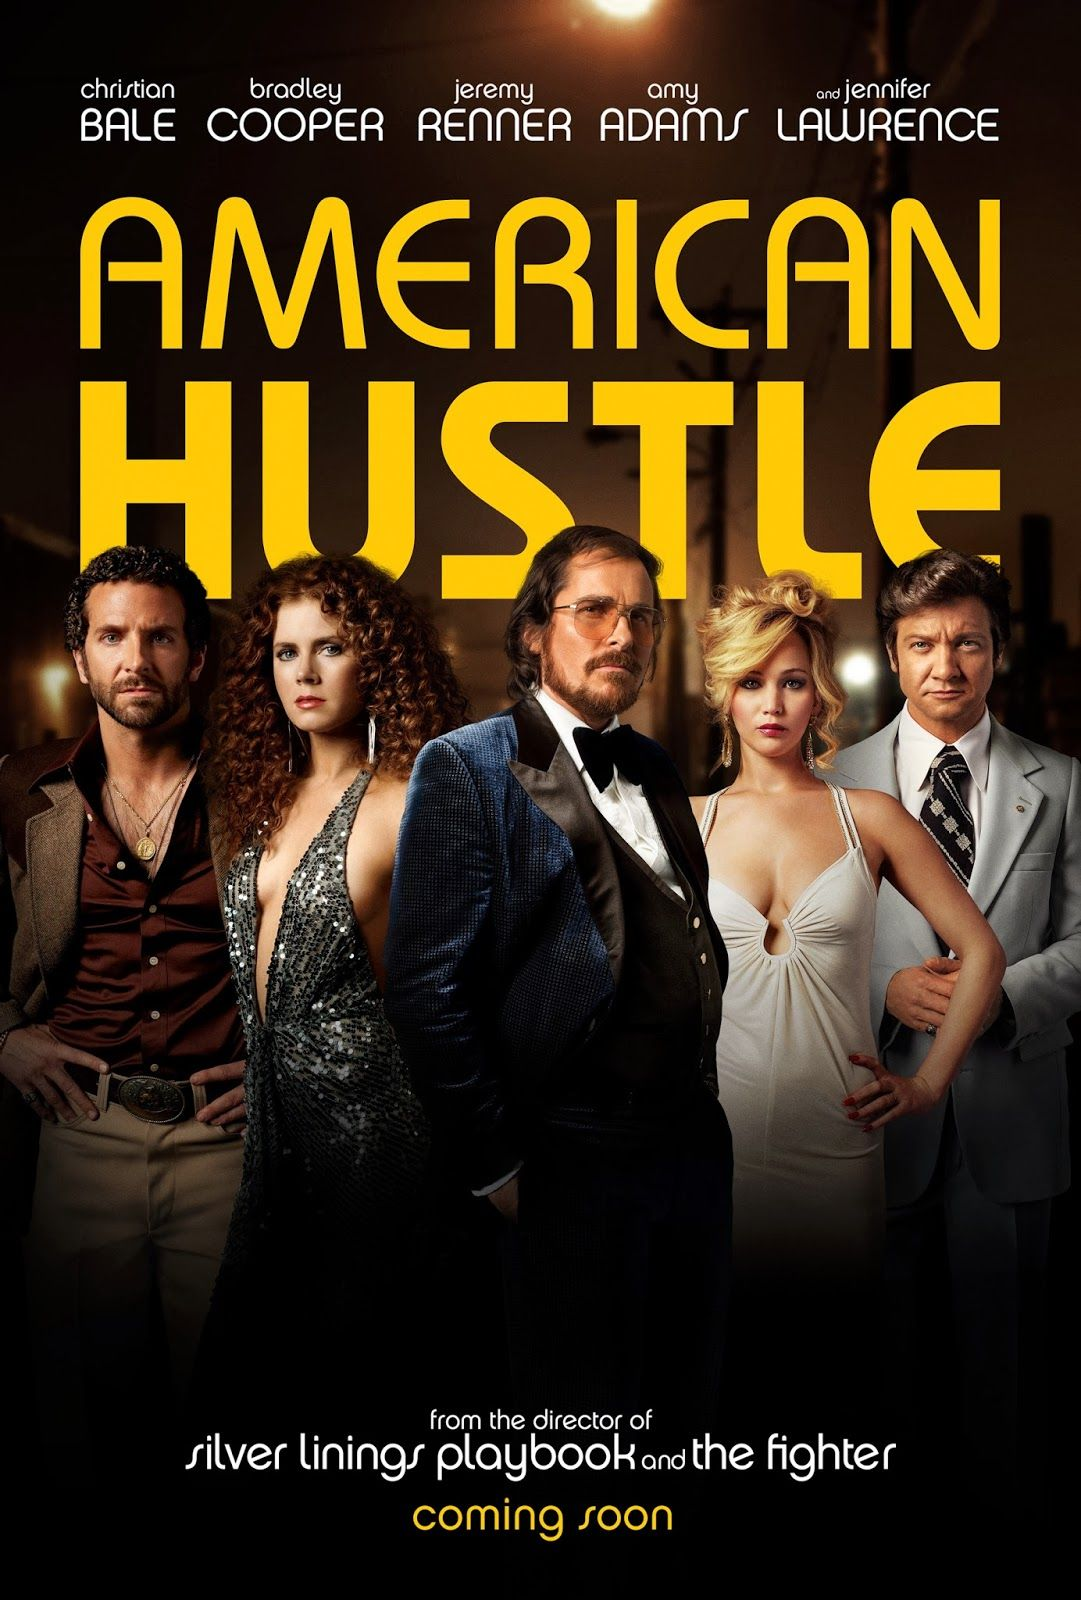 american hustle 2013 directed by david o russell